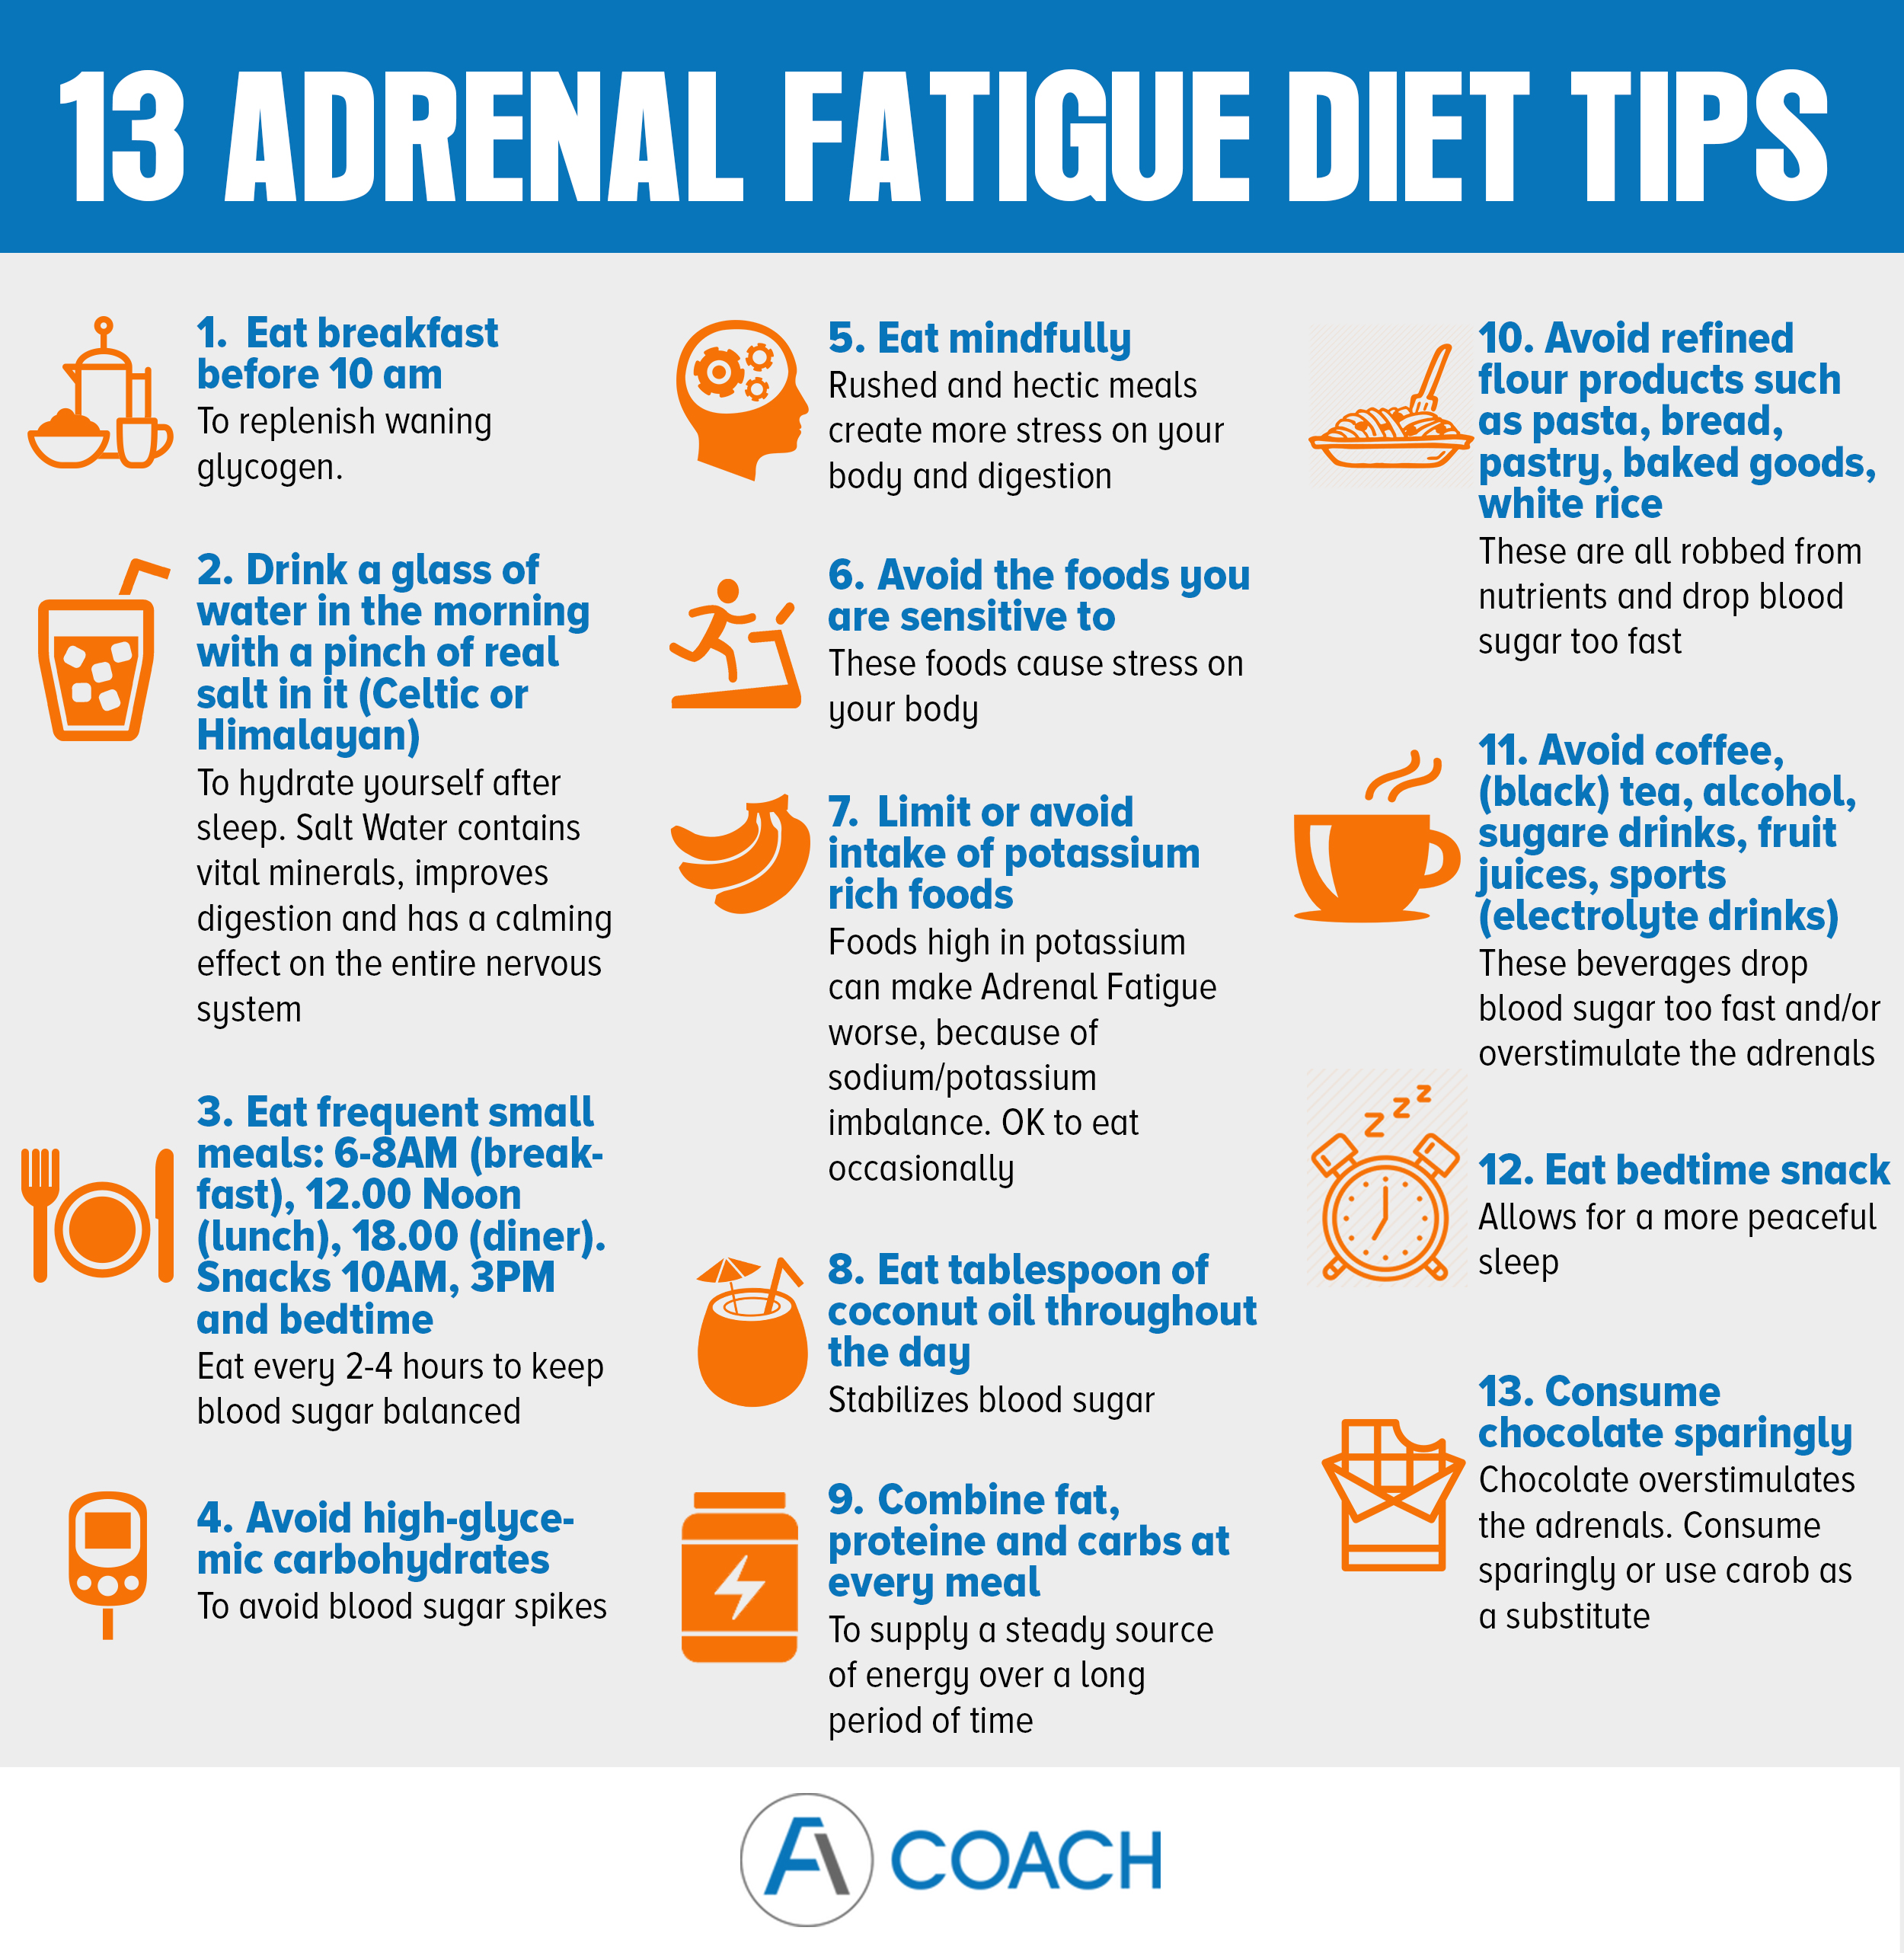 adrenal fatigue diet tips